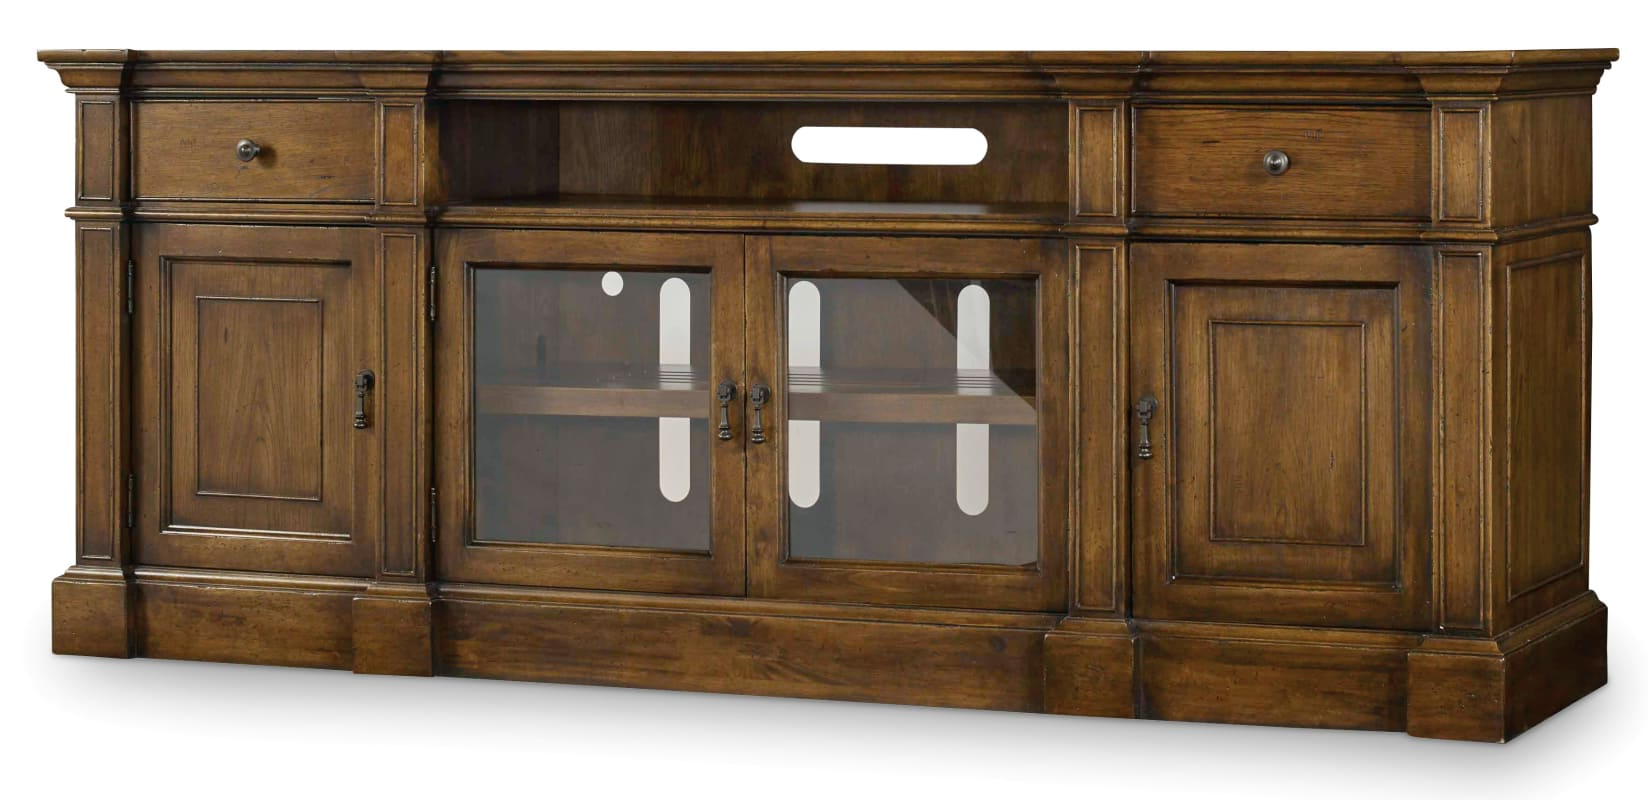 "Colefax Vintage Tv Stands For Tvs Up To 78"" With Regard To Latest Pinterest – Пинтерест (View 12 of 20)"